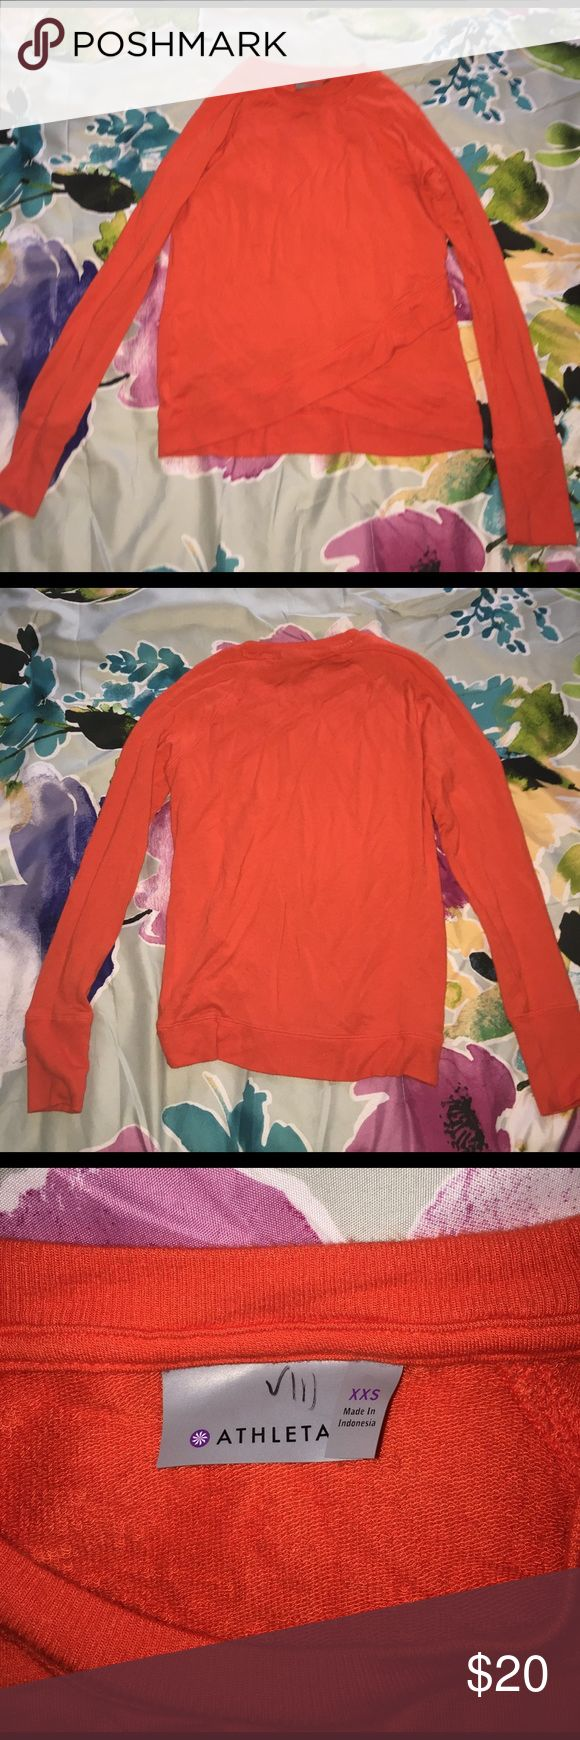 Athleta Orange pullover Worn once, is in great condition Athleta Sweaters Crew & Scoop Necks